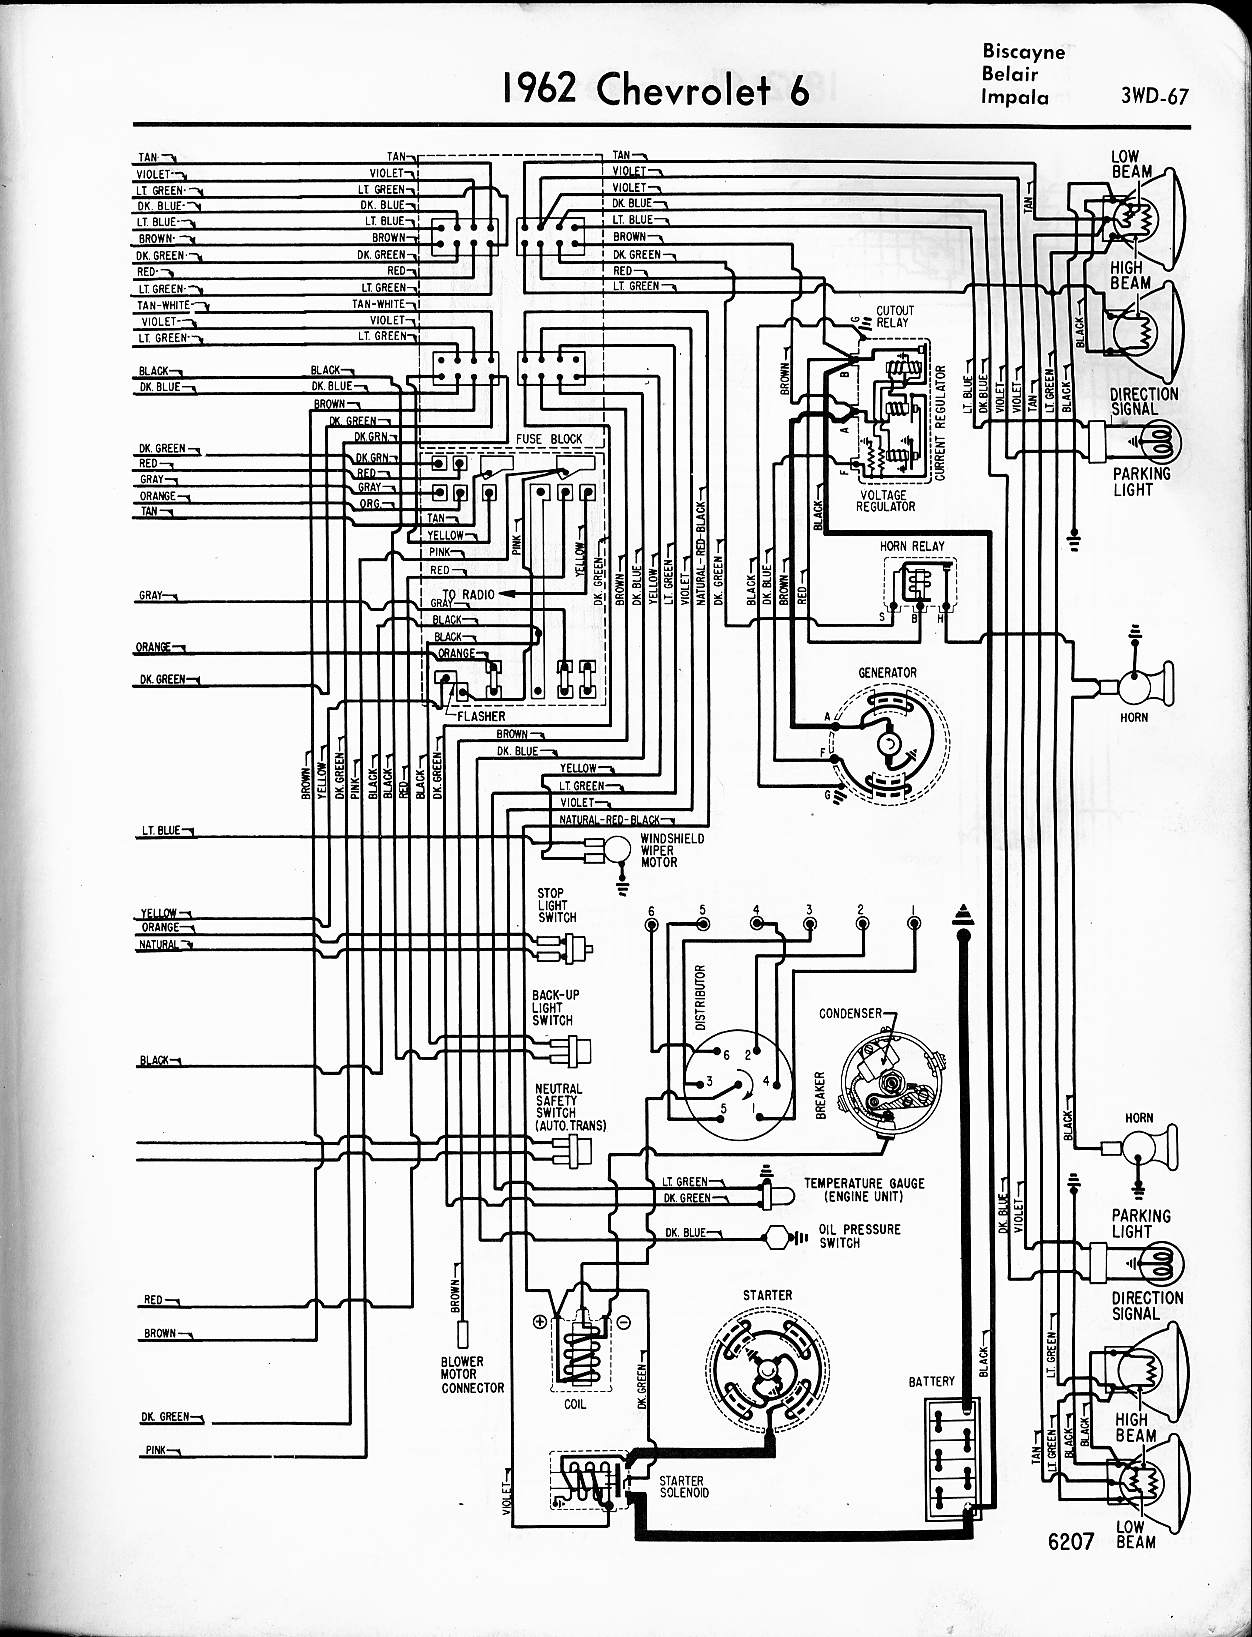 57 65 Chevy Wiring Diagrams 1962 Chevy Truck Wiring Diagram 62 Chevy Impala  Wiring Diagram